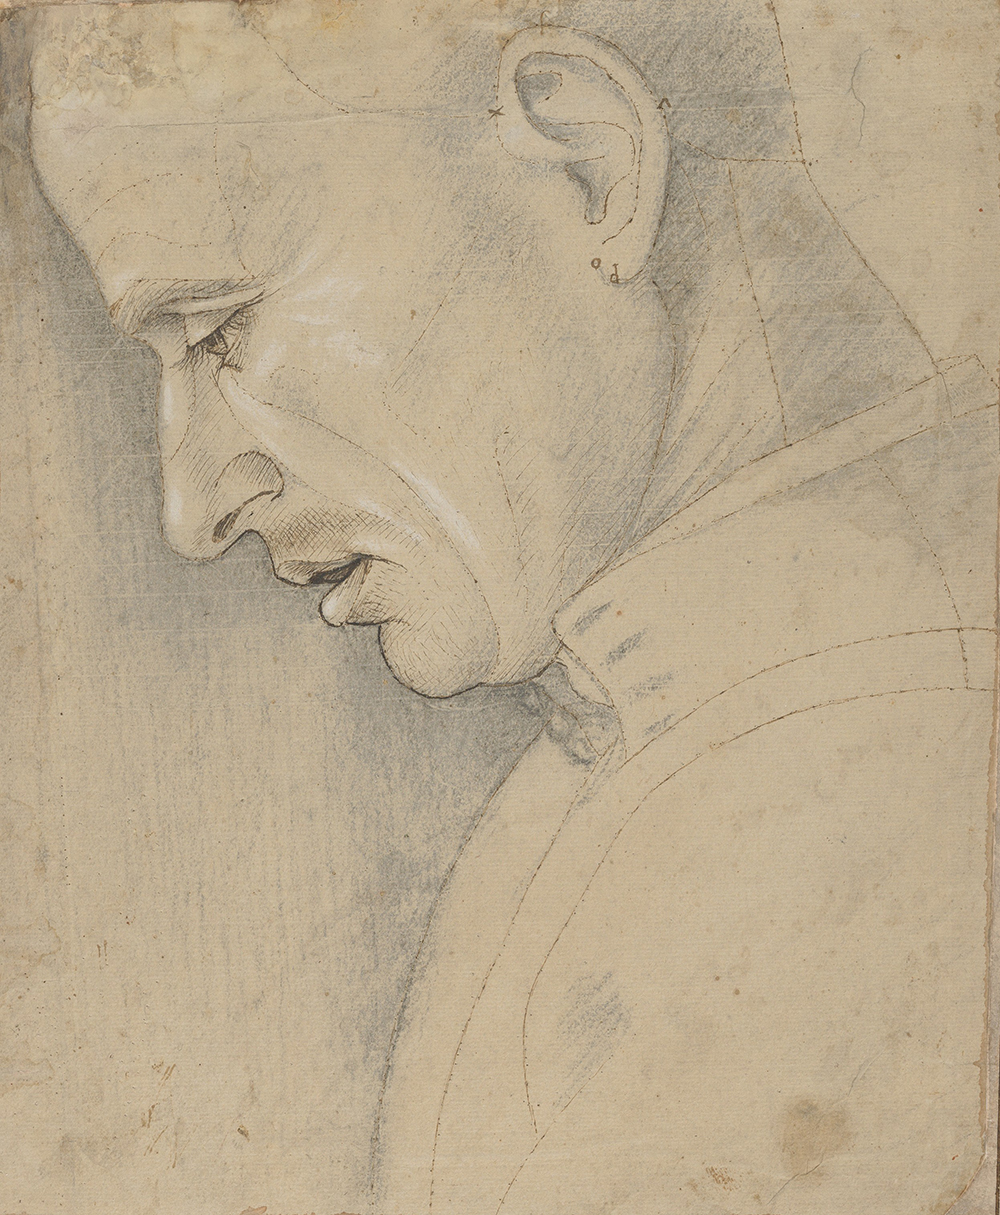 Head of a Man in Profile, by Luca Signorelli, c. 1495. © The Metropolitan Museum of Art, Robert Lehman Collection, 1975.